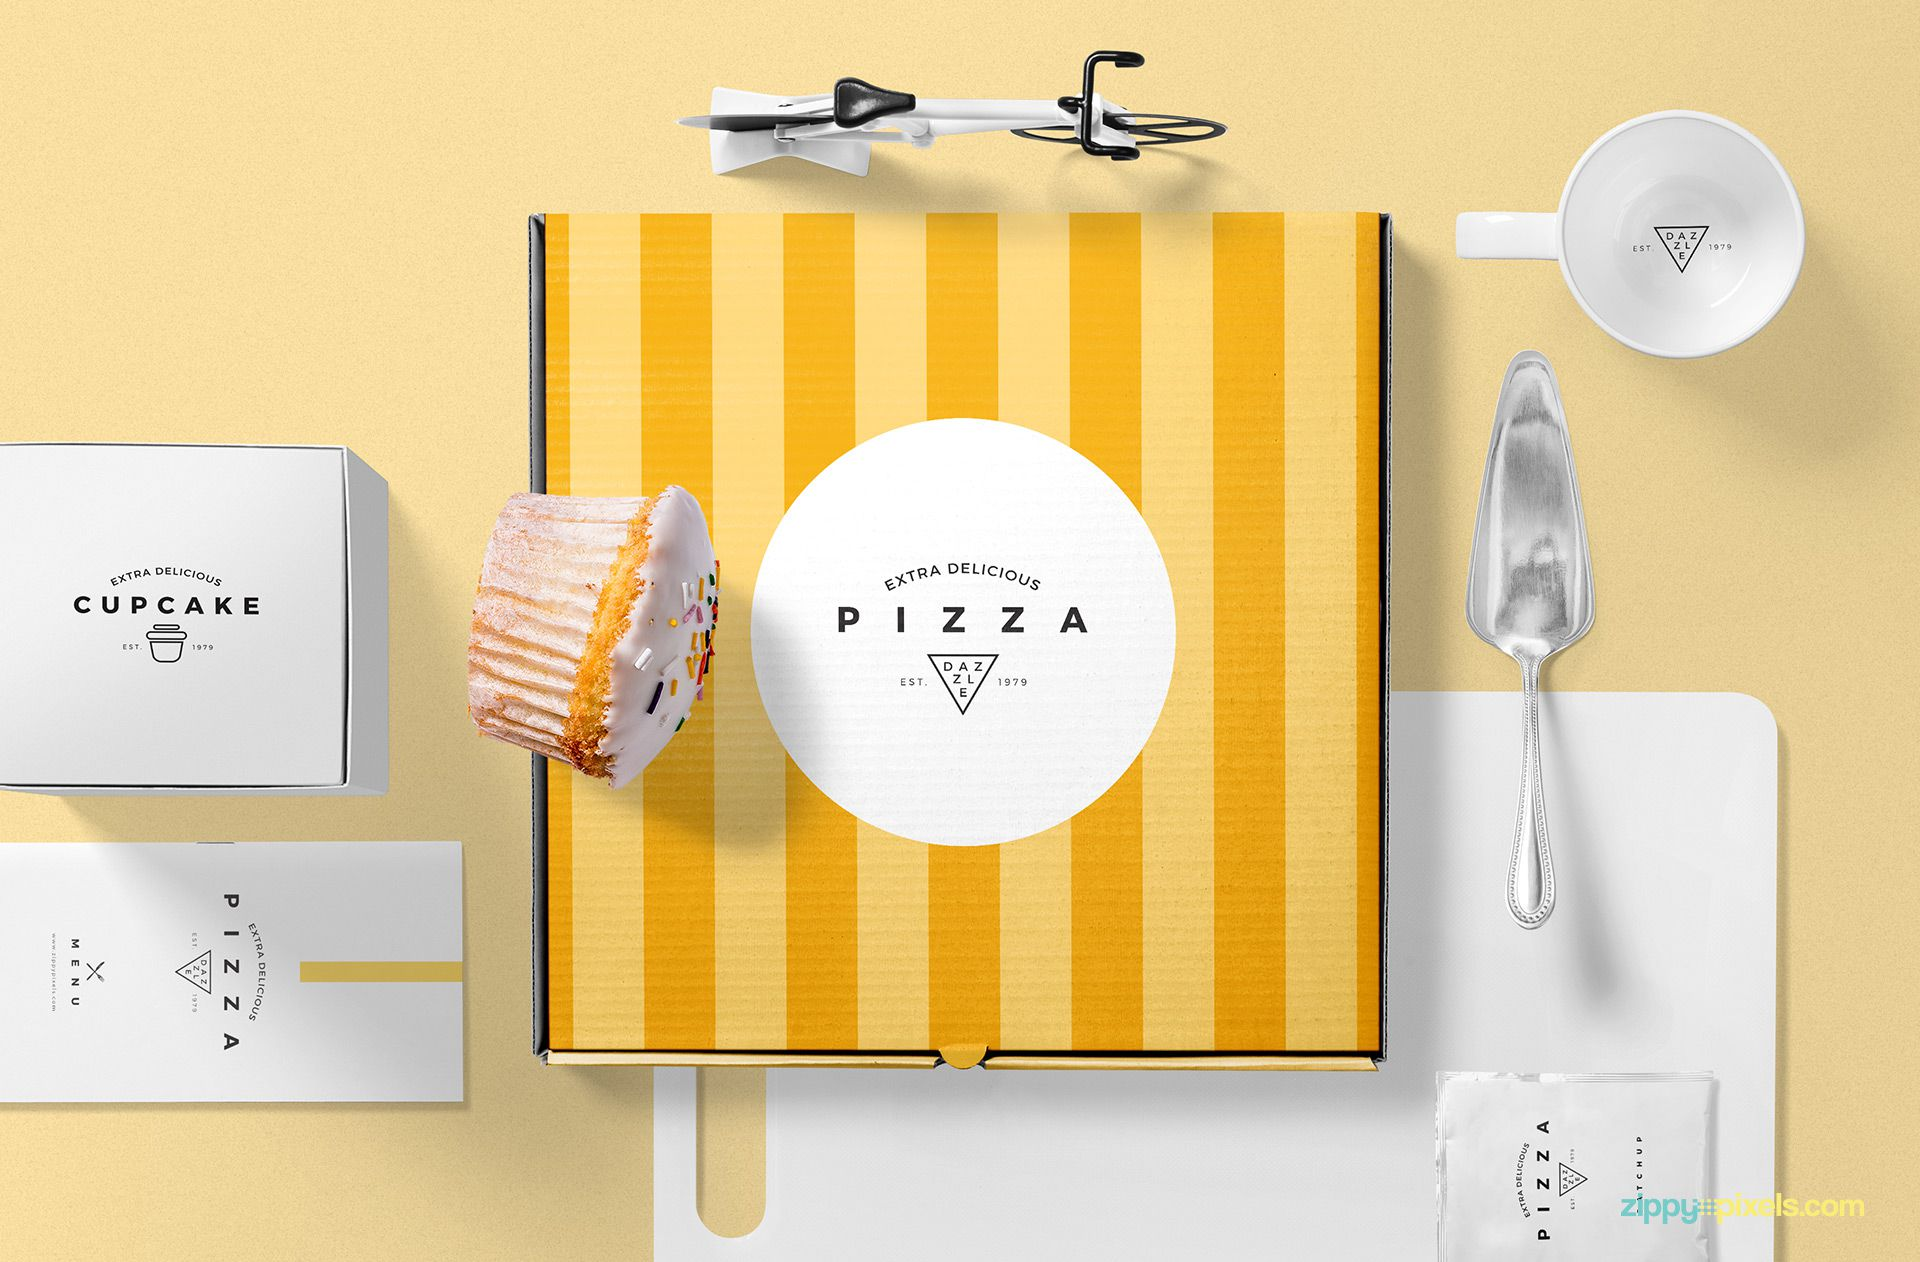 Free pizza packaging mockup.